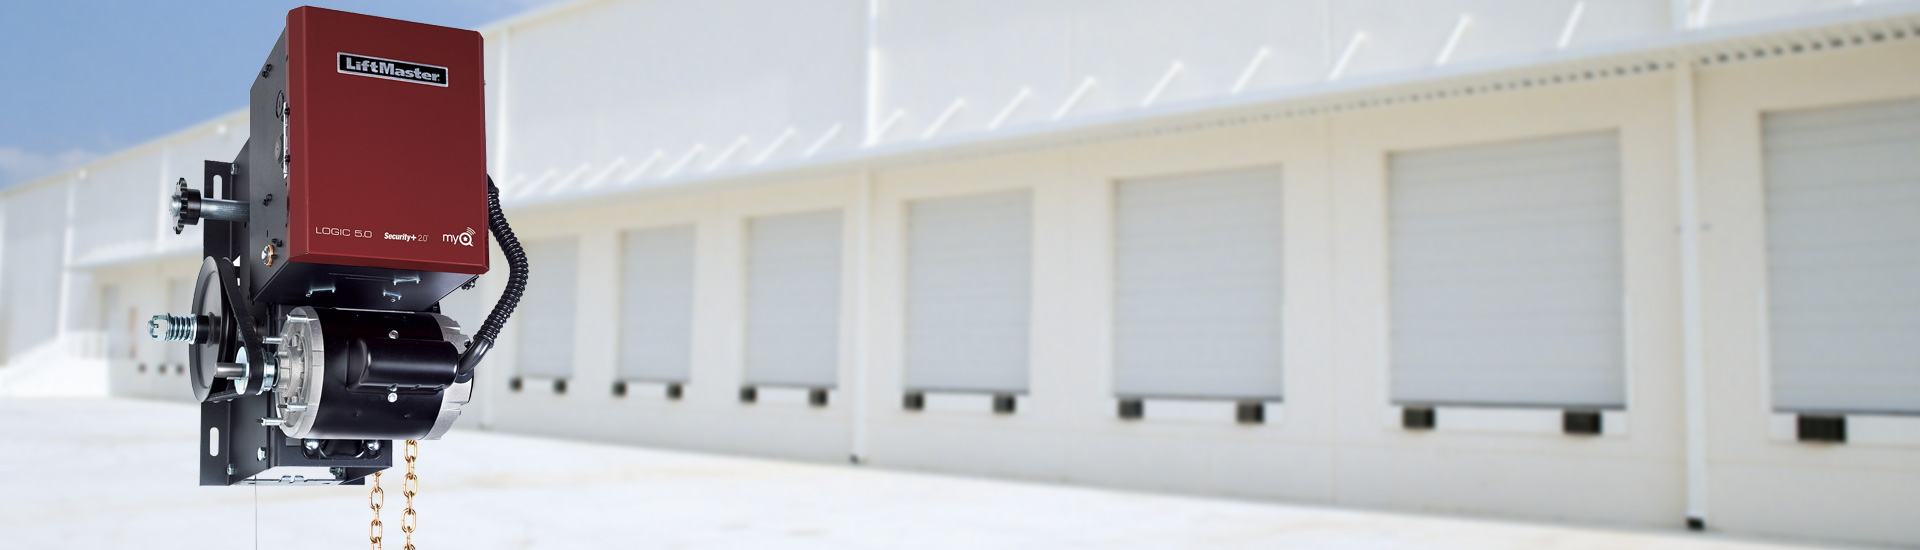 Dallas Fort Worth Commercial Garage Door Openers